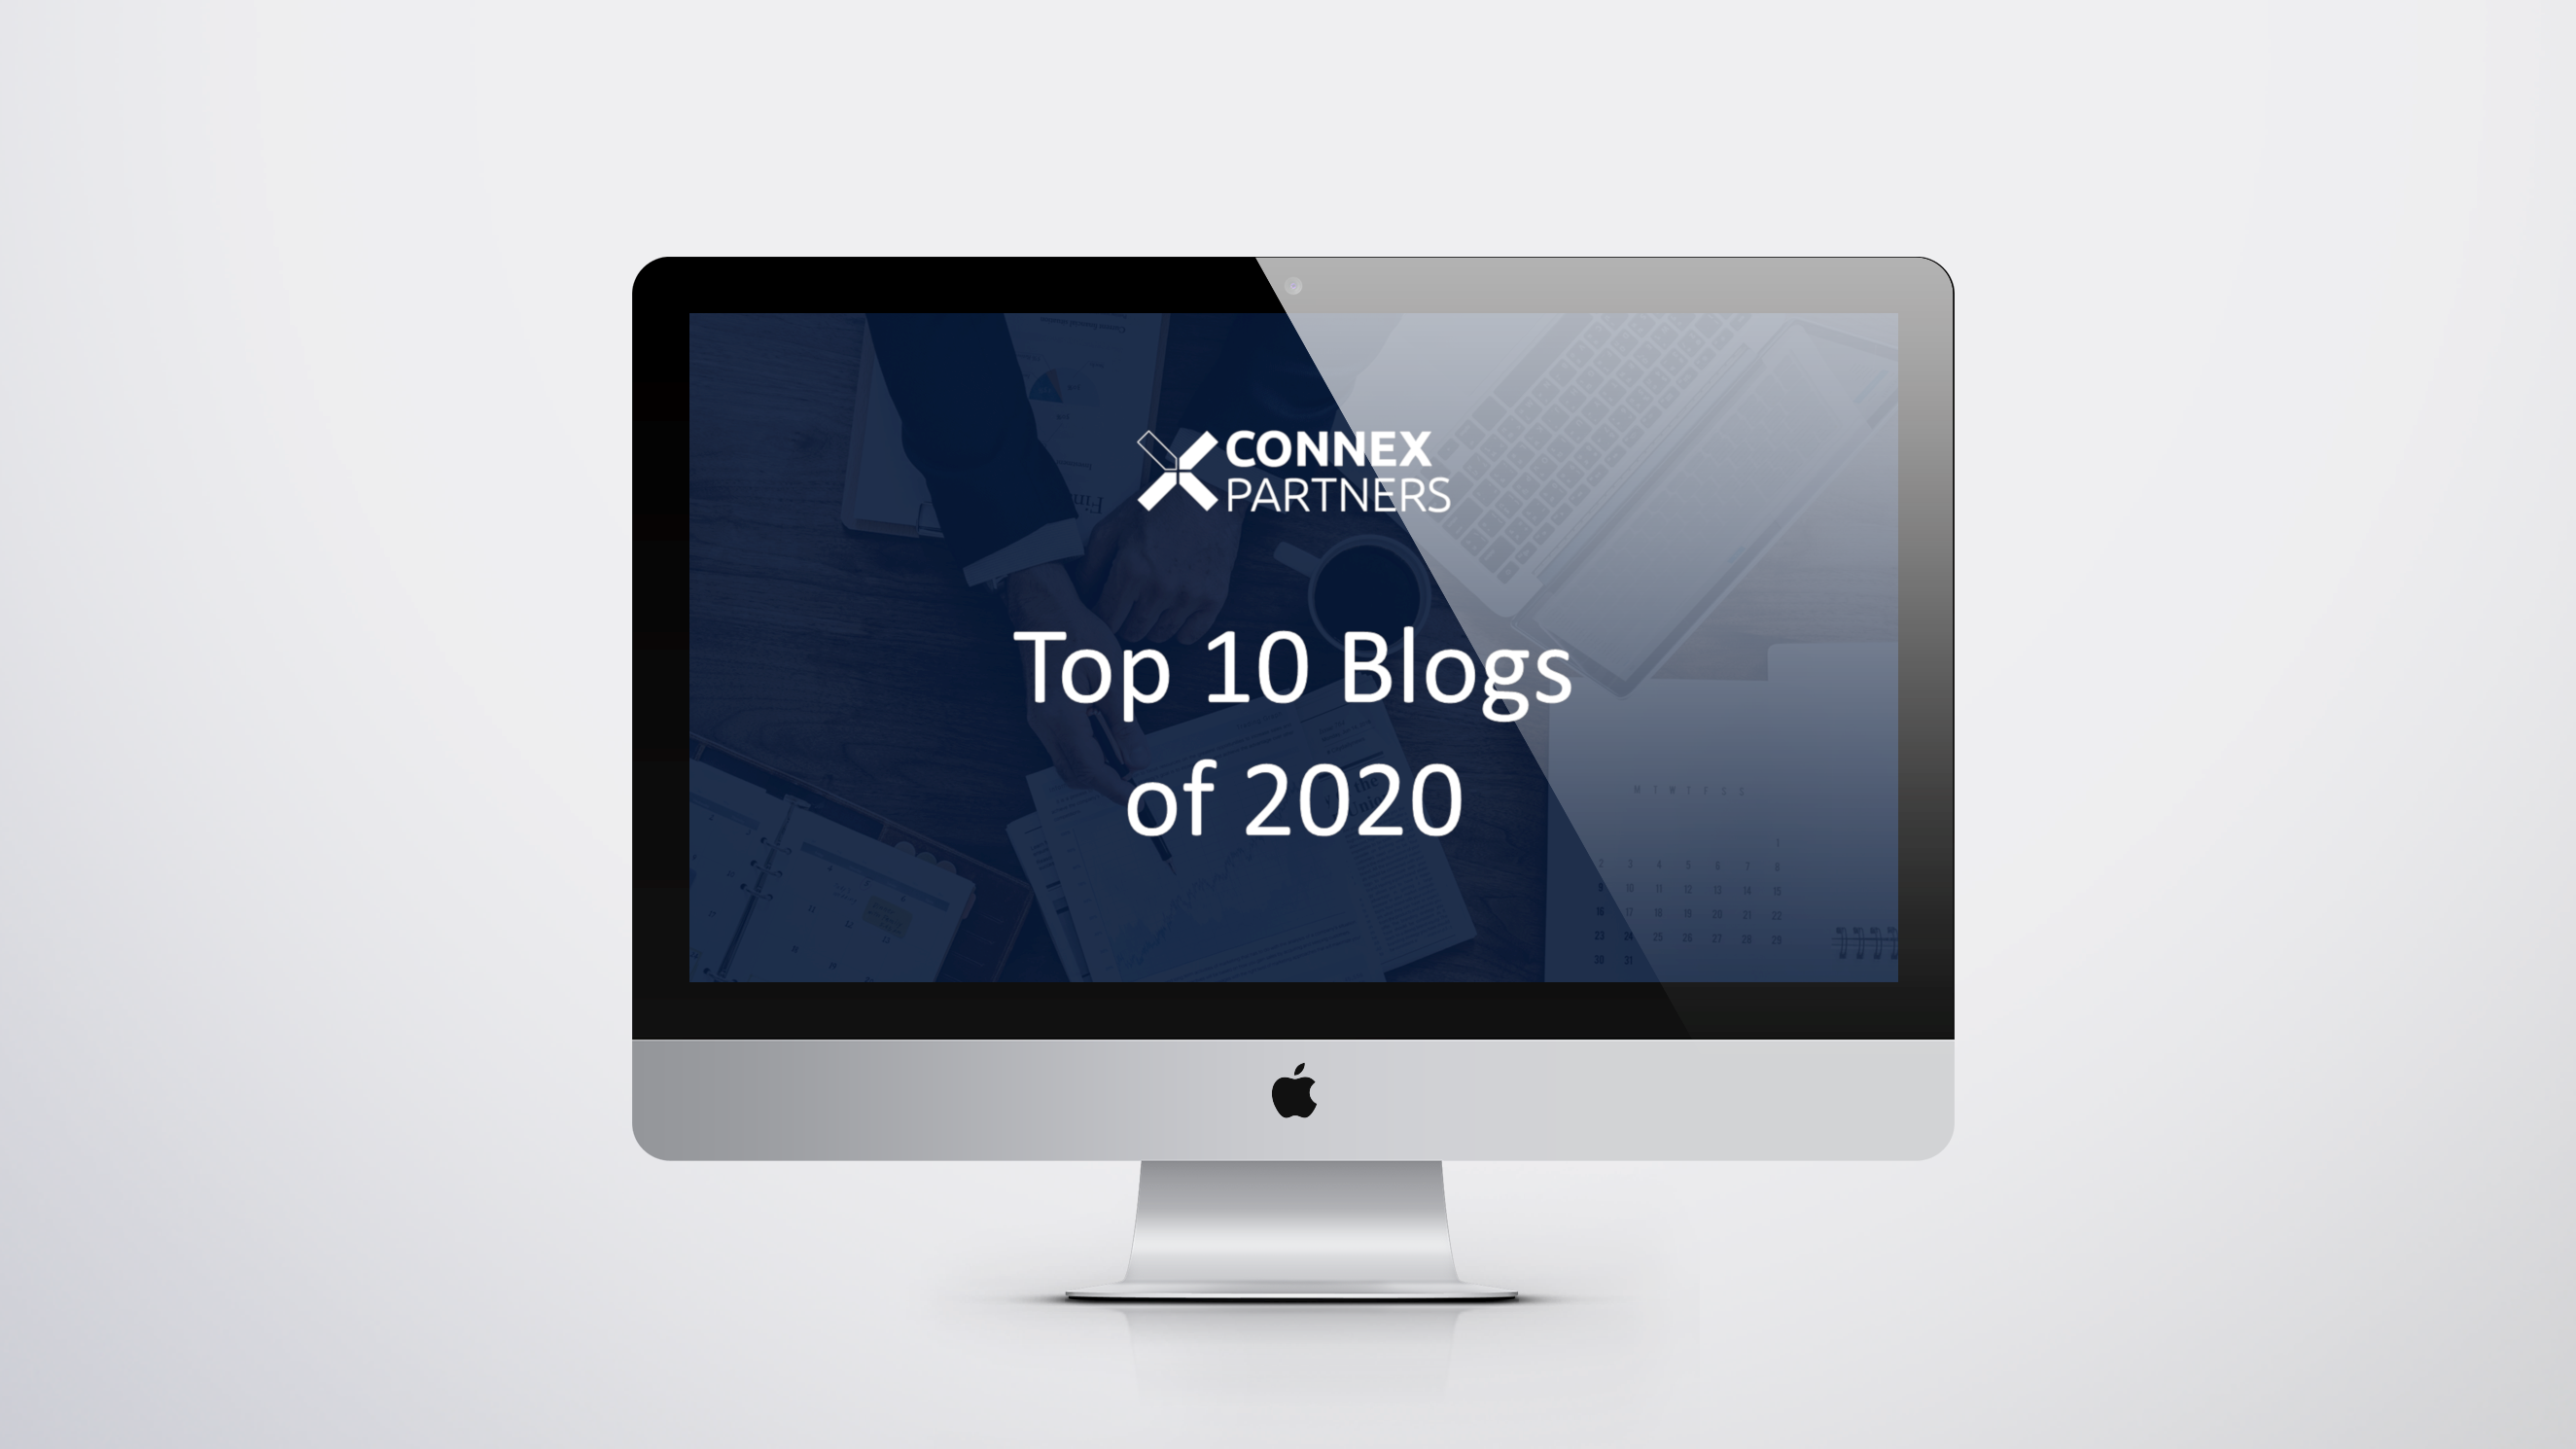 Top 10 Connex Blogs of 2020